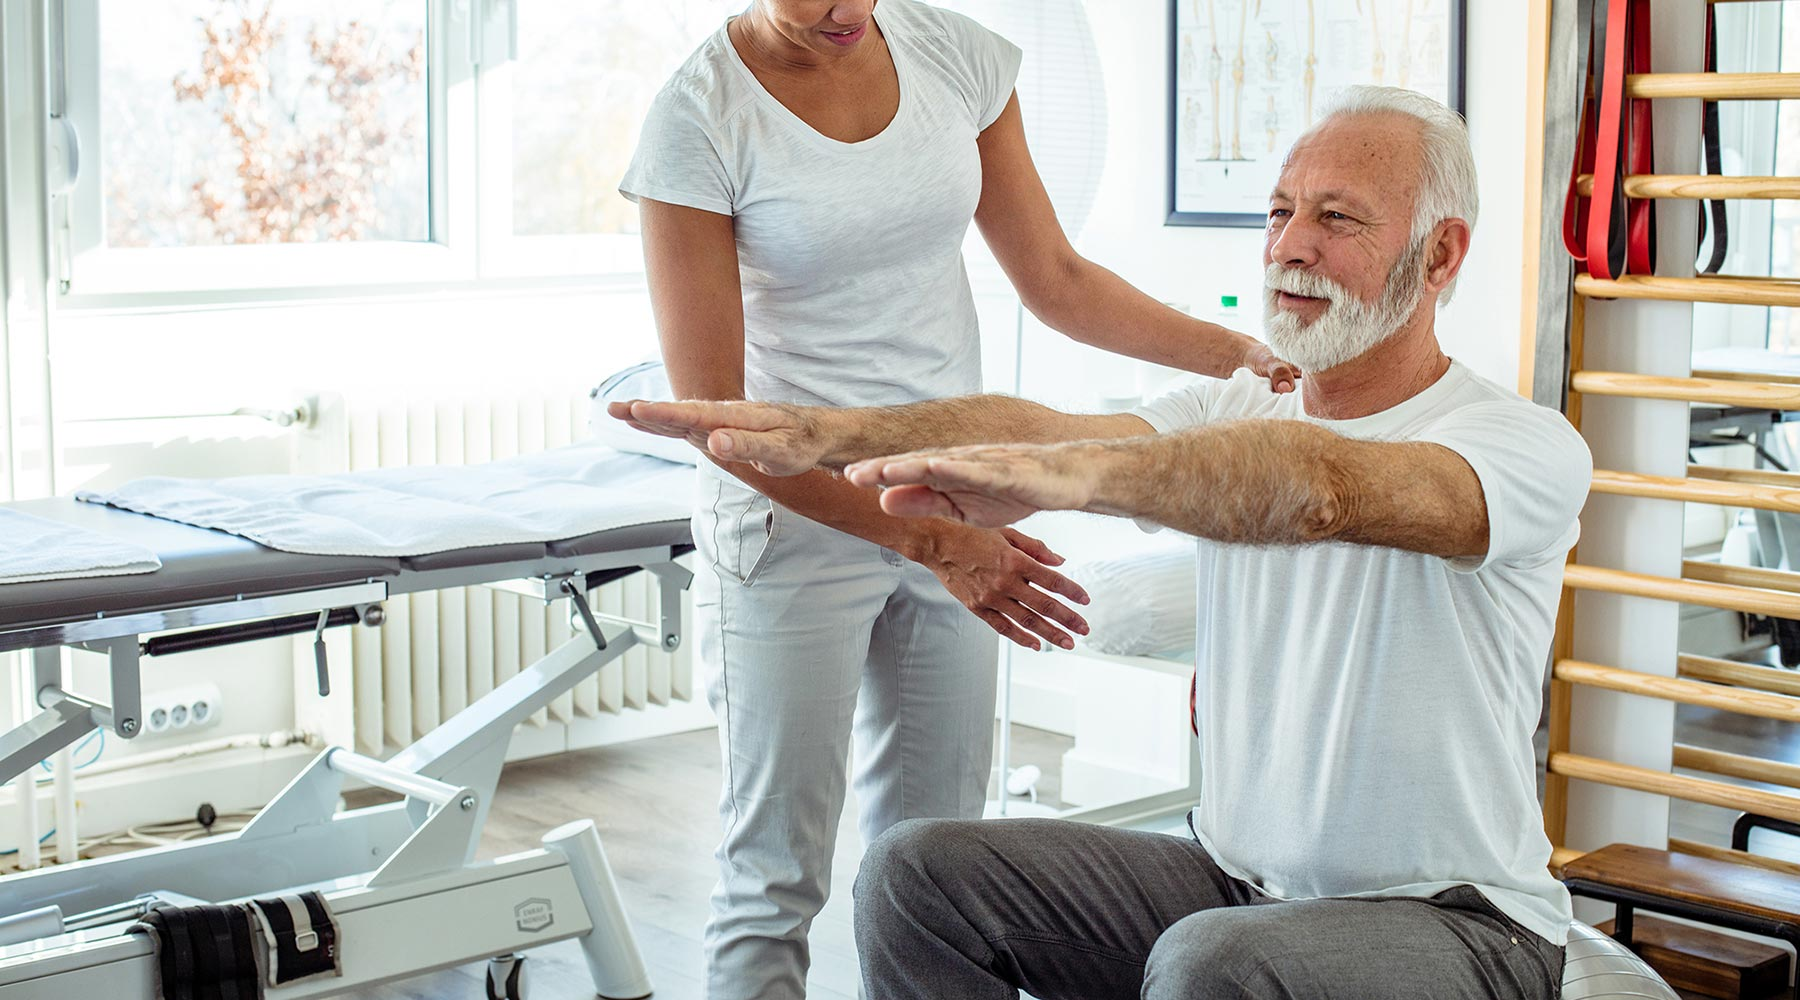 A Complete Guide to Insurance for Physical Therapists